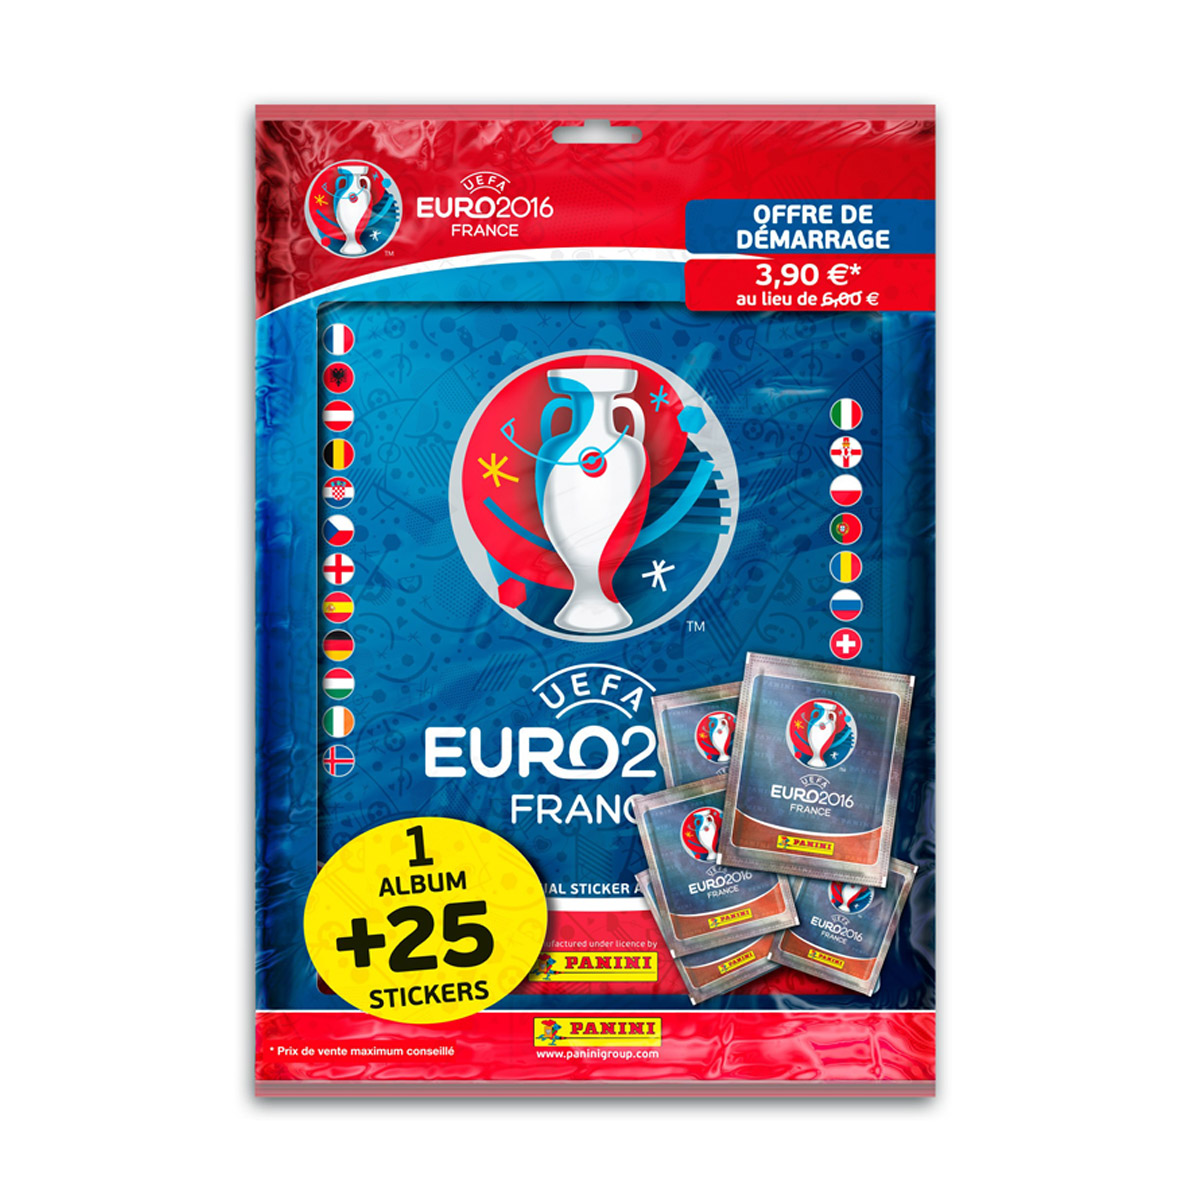 Album + 25 stickers - UEFA Euro 2016